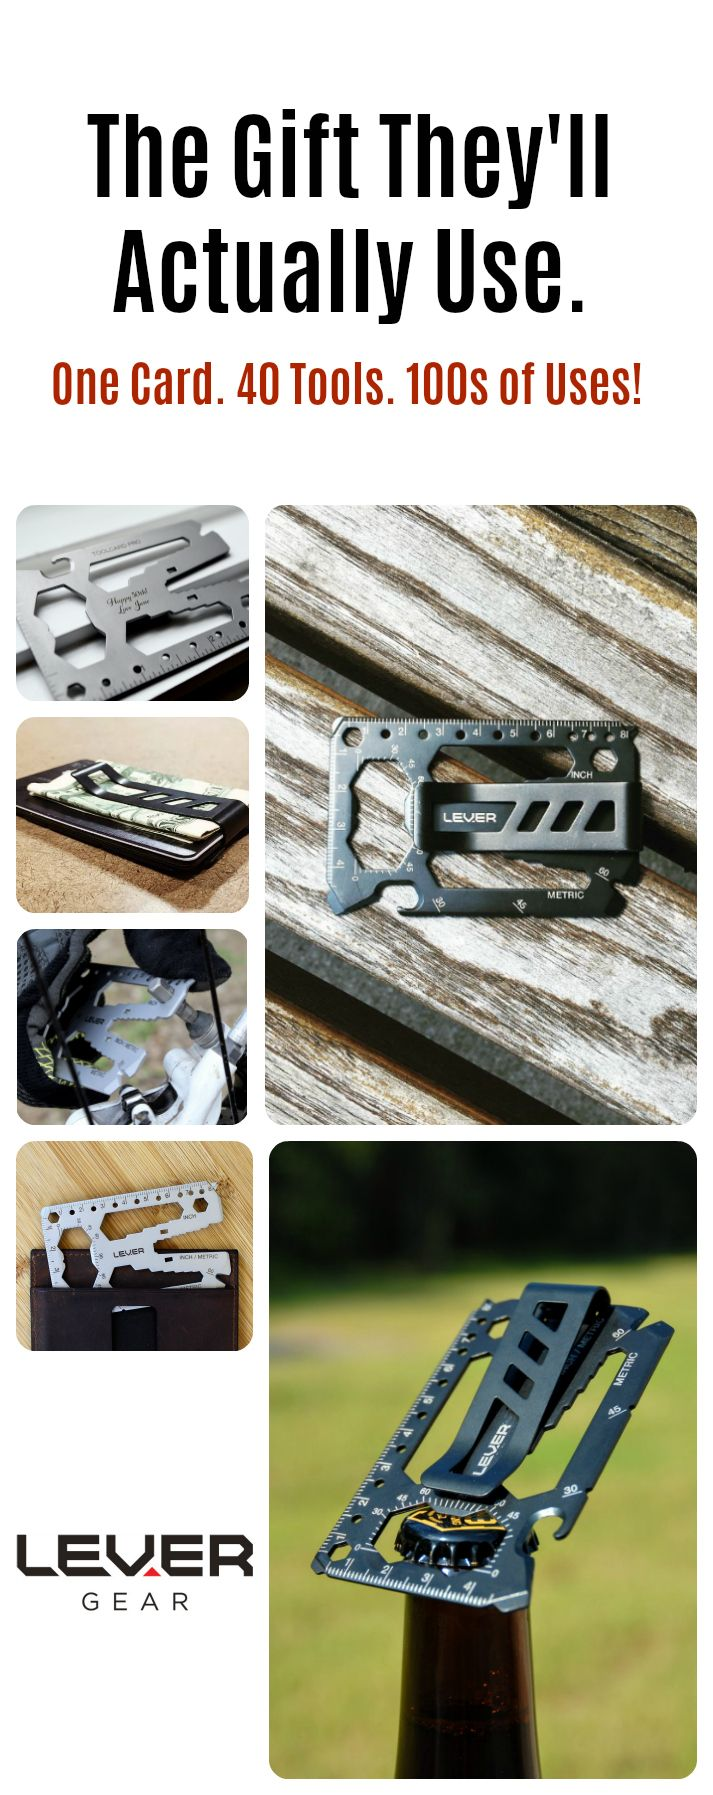 The Lever Gear Toolcard Pro. Credit card-sized multitool with 40 tools. Made in America from 420 stainless steel. Detachable money clip. TSA compliant. Lifetime guarantee. Show them you care with a gift that's actually useful! Add your personalized message for milestone birthdays, anniversaries, retirements or just because. #everydaycarry